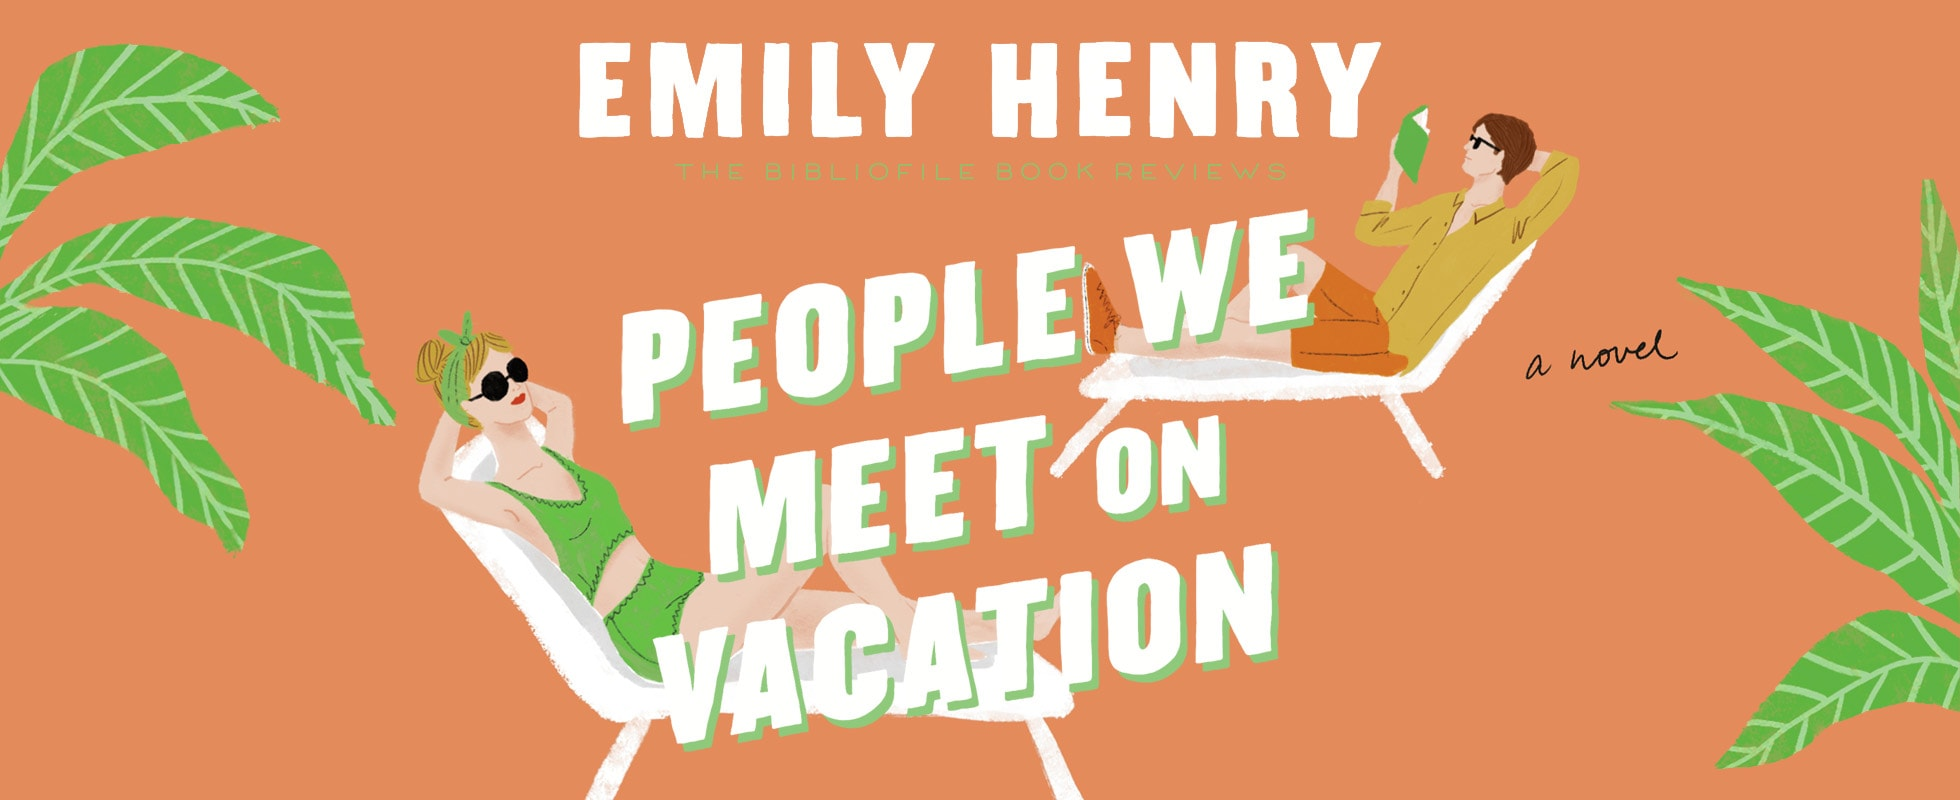 people we meet on vacation by emily henry book review plot summary synopsis recap